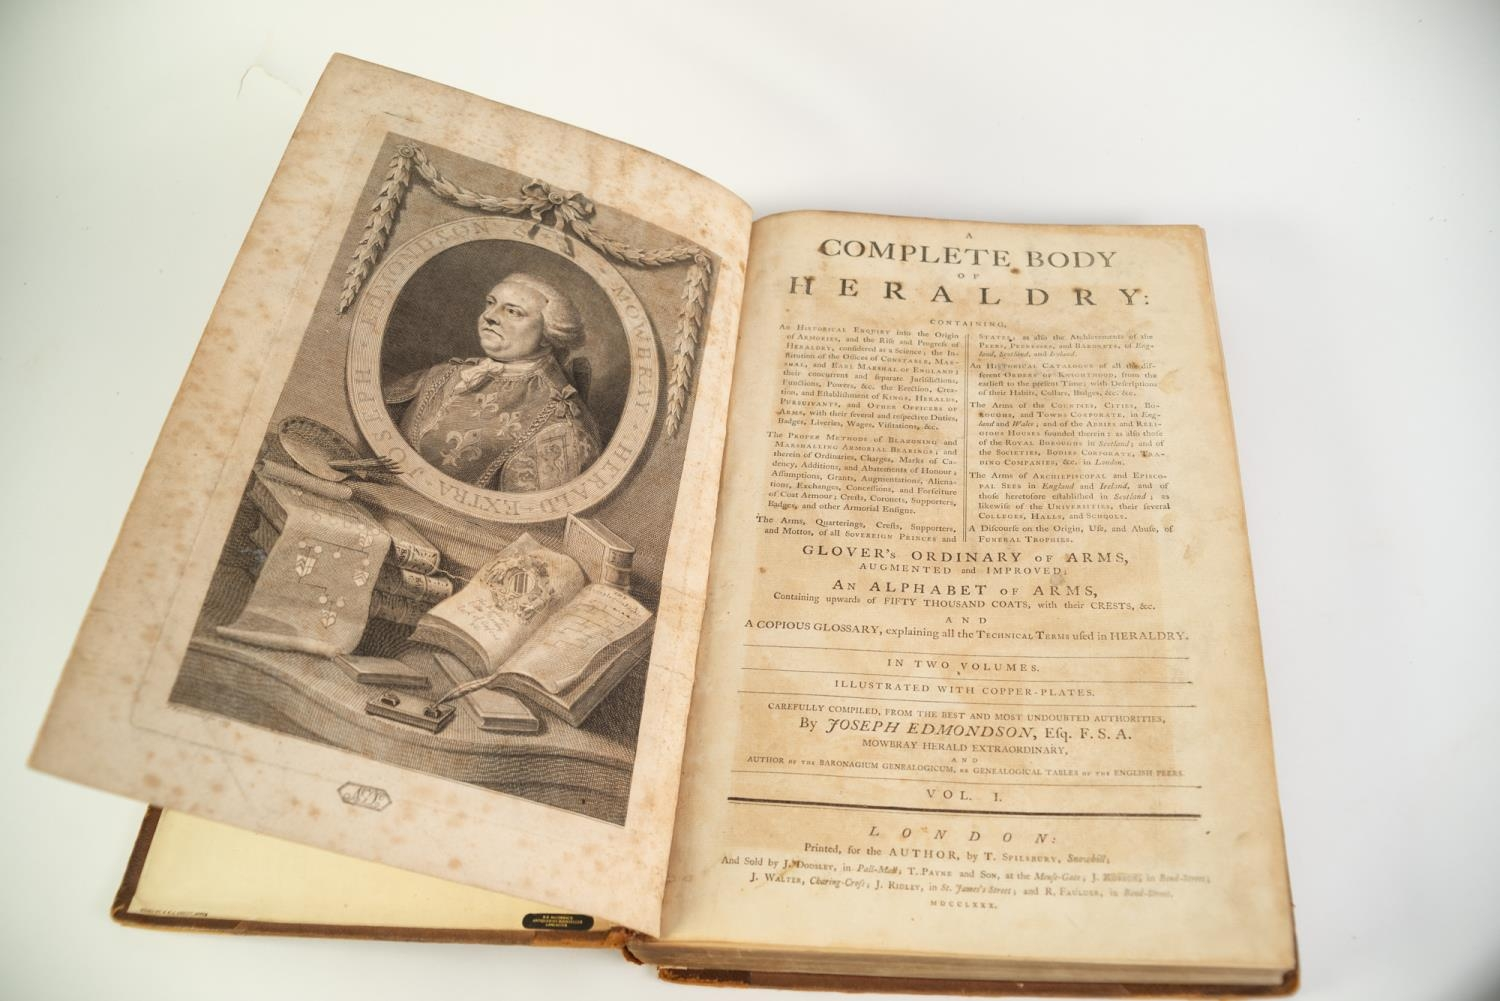 Joseph Edmondson- A Complete Body of Heraldry, 2 vol, folio, London, printed for the Author by T - Image 5 of 7